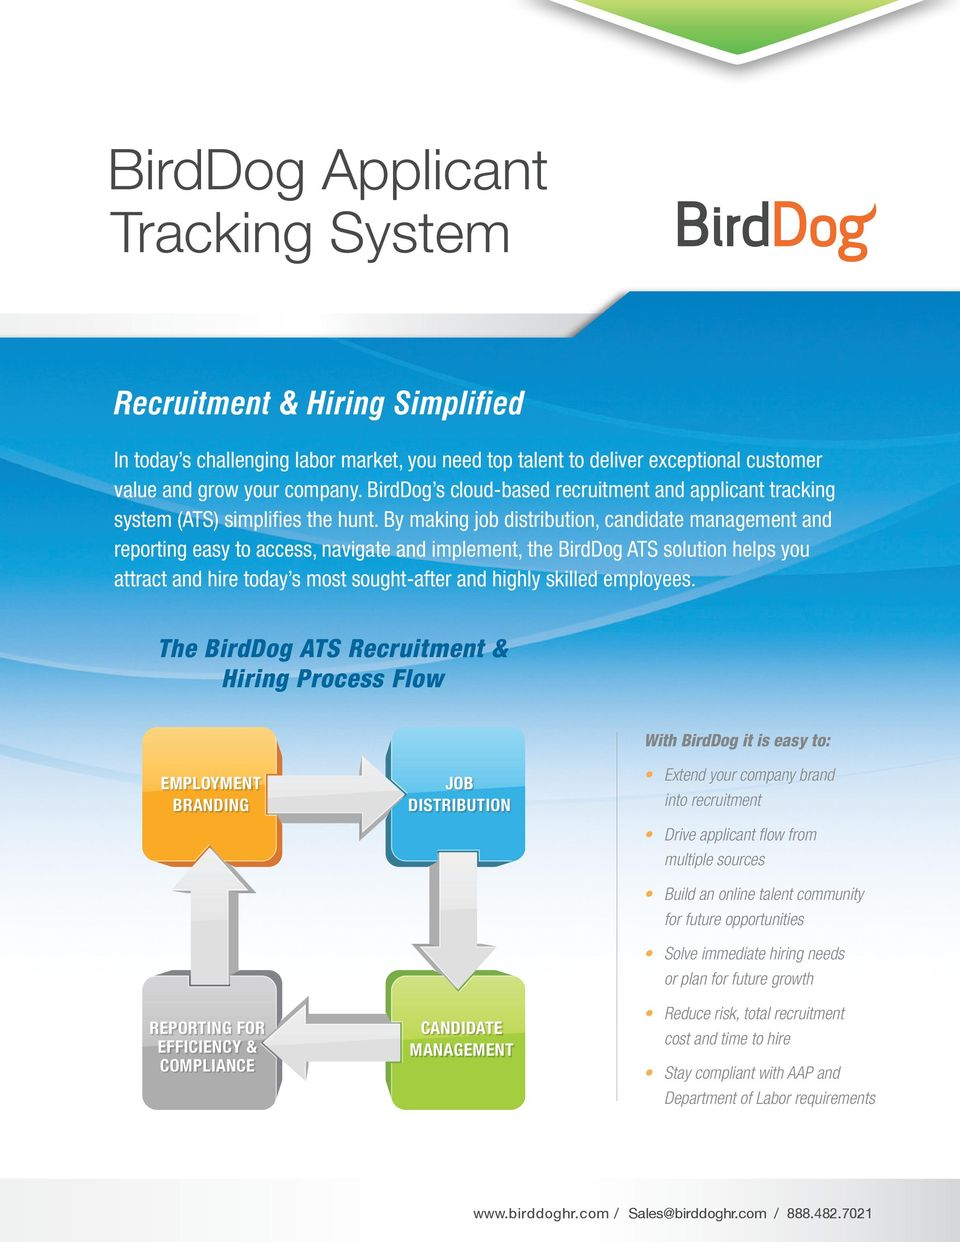 By making job distribution, candidate management and reporting easy to access, navigate and implement, the BirdDog ATS solution helps you attract and hire today s most sought-after and highly skilled